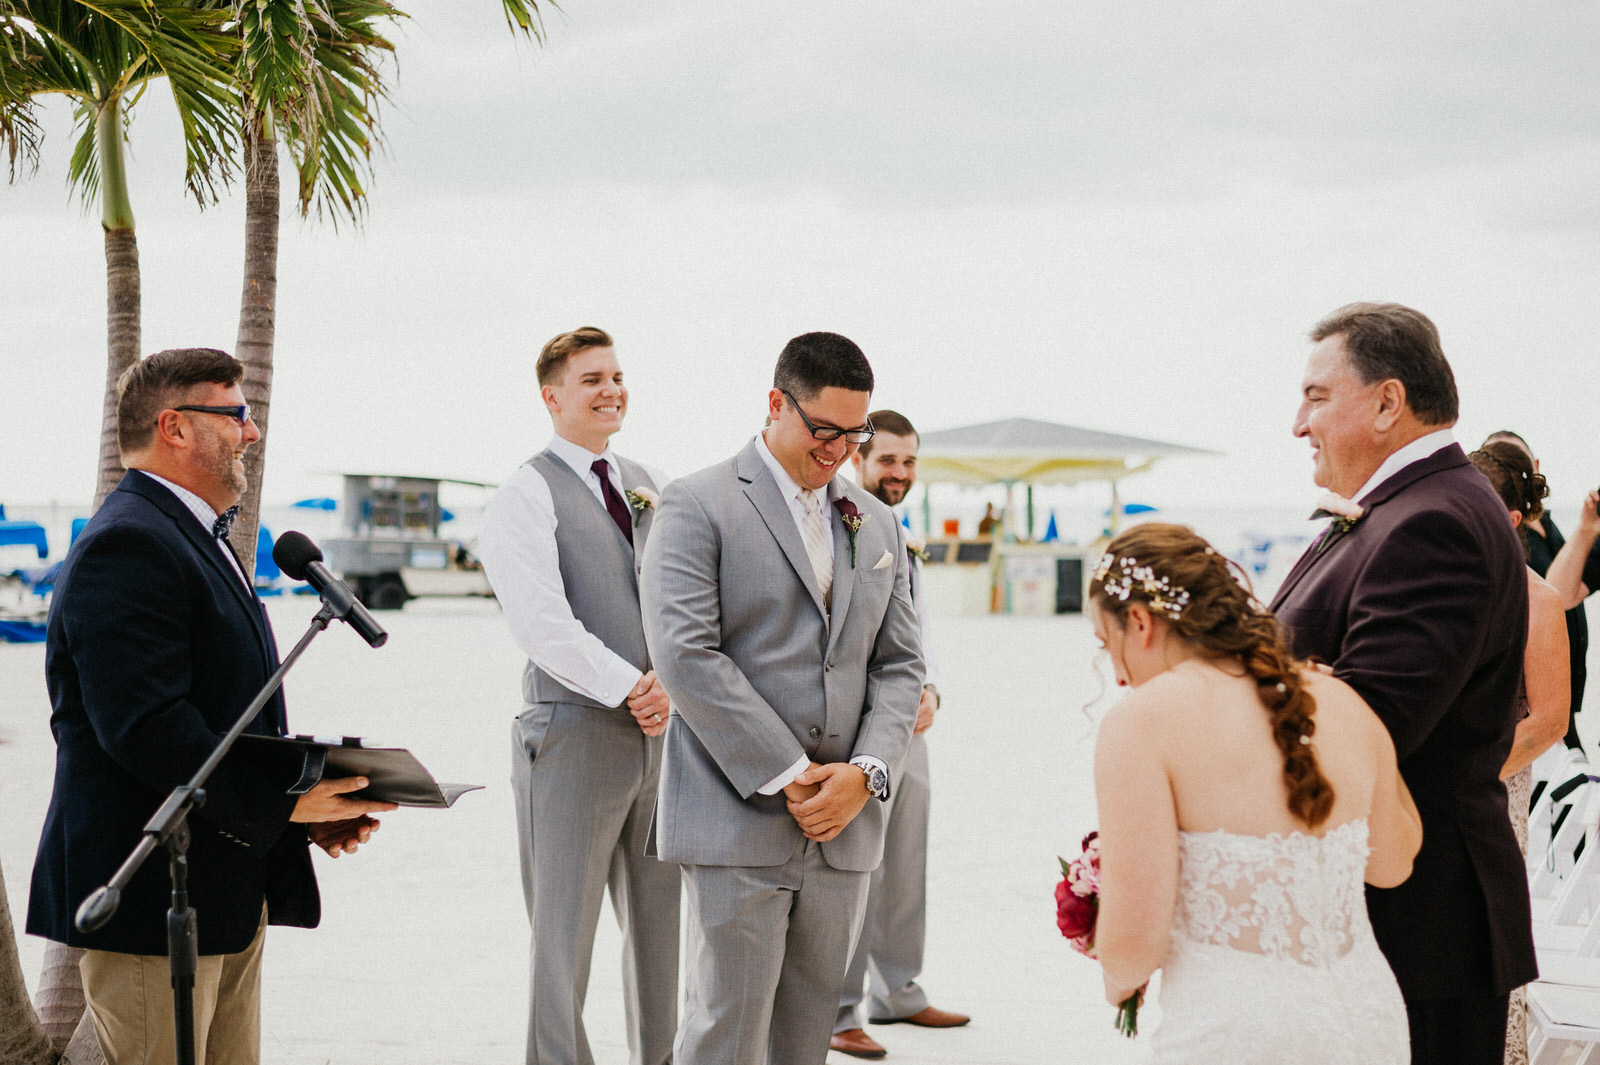 Mcneile_Photography_Wedding28.jpg